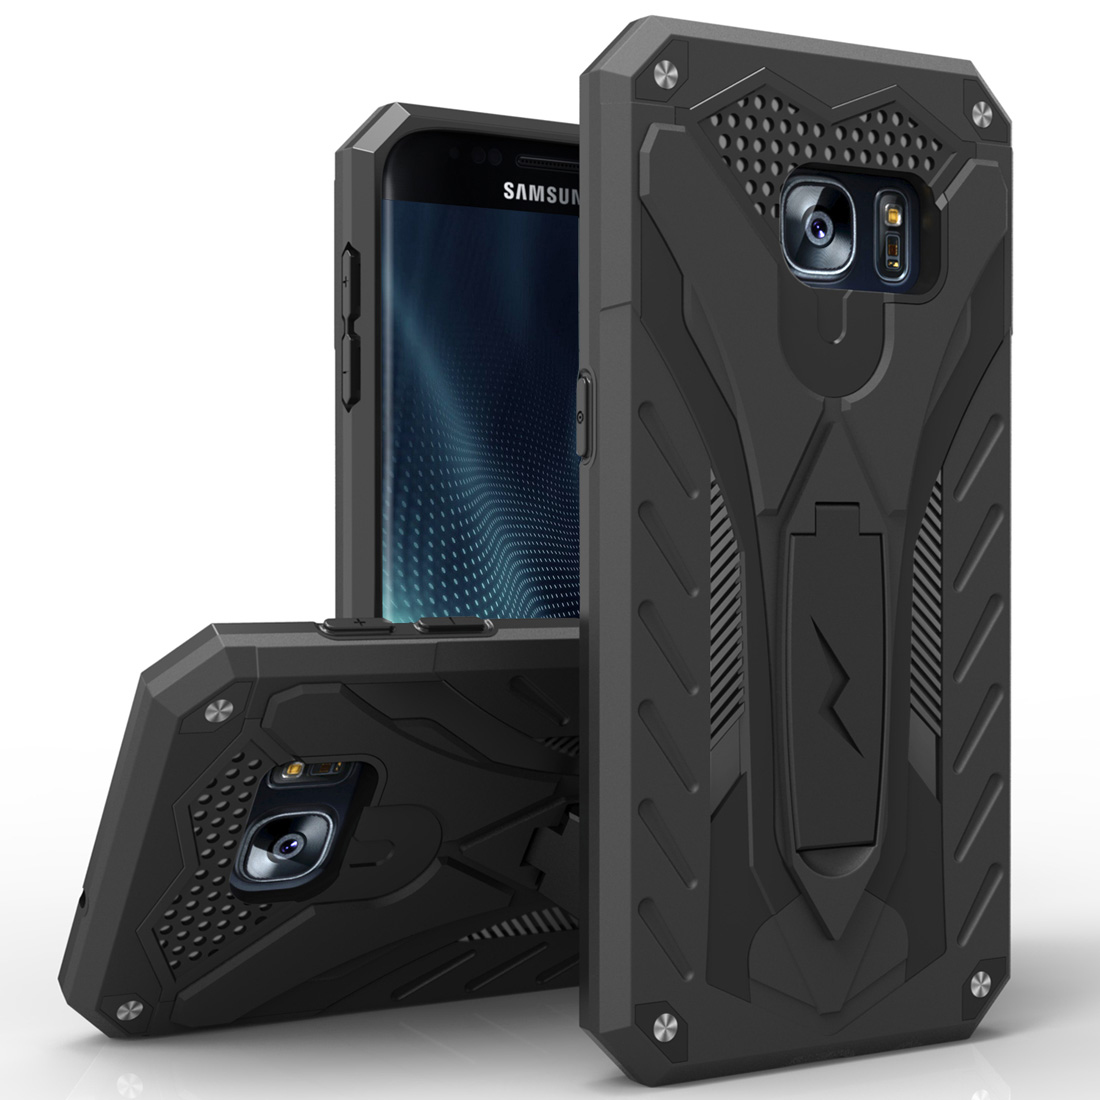 Made for [Samsung Galaxy S7 Edge]-Static Series:  Dual Layer Hard Case TPU Hybrid [Military Grade] w/ Kickstand & Shock Absorption [Black]